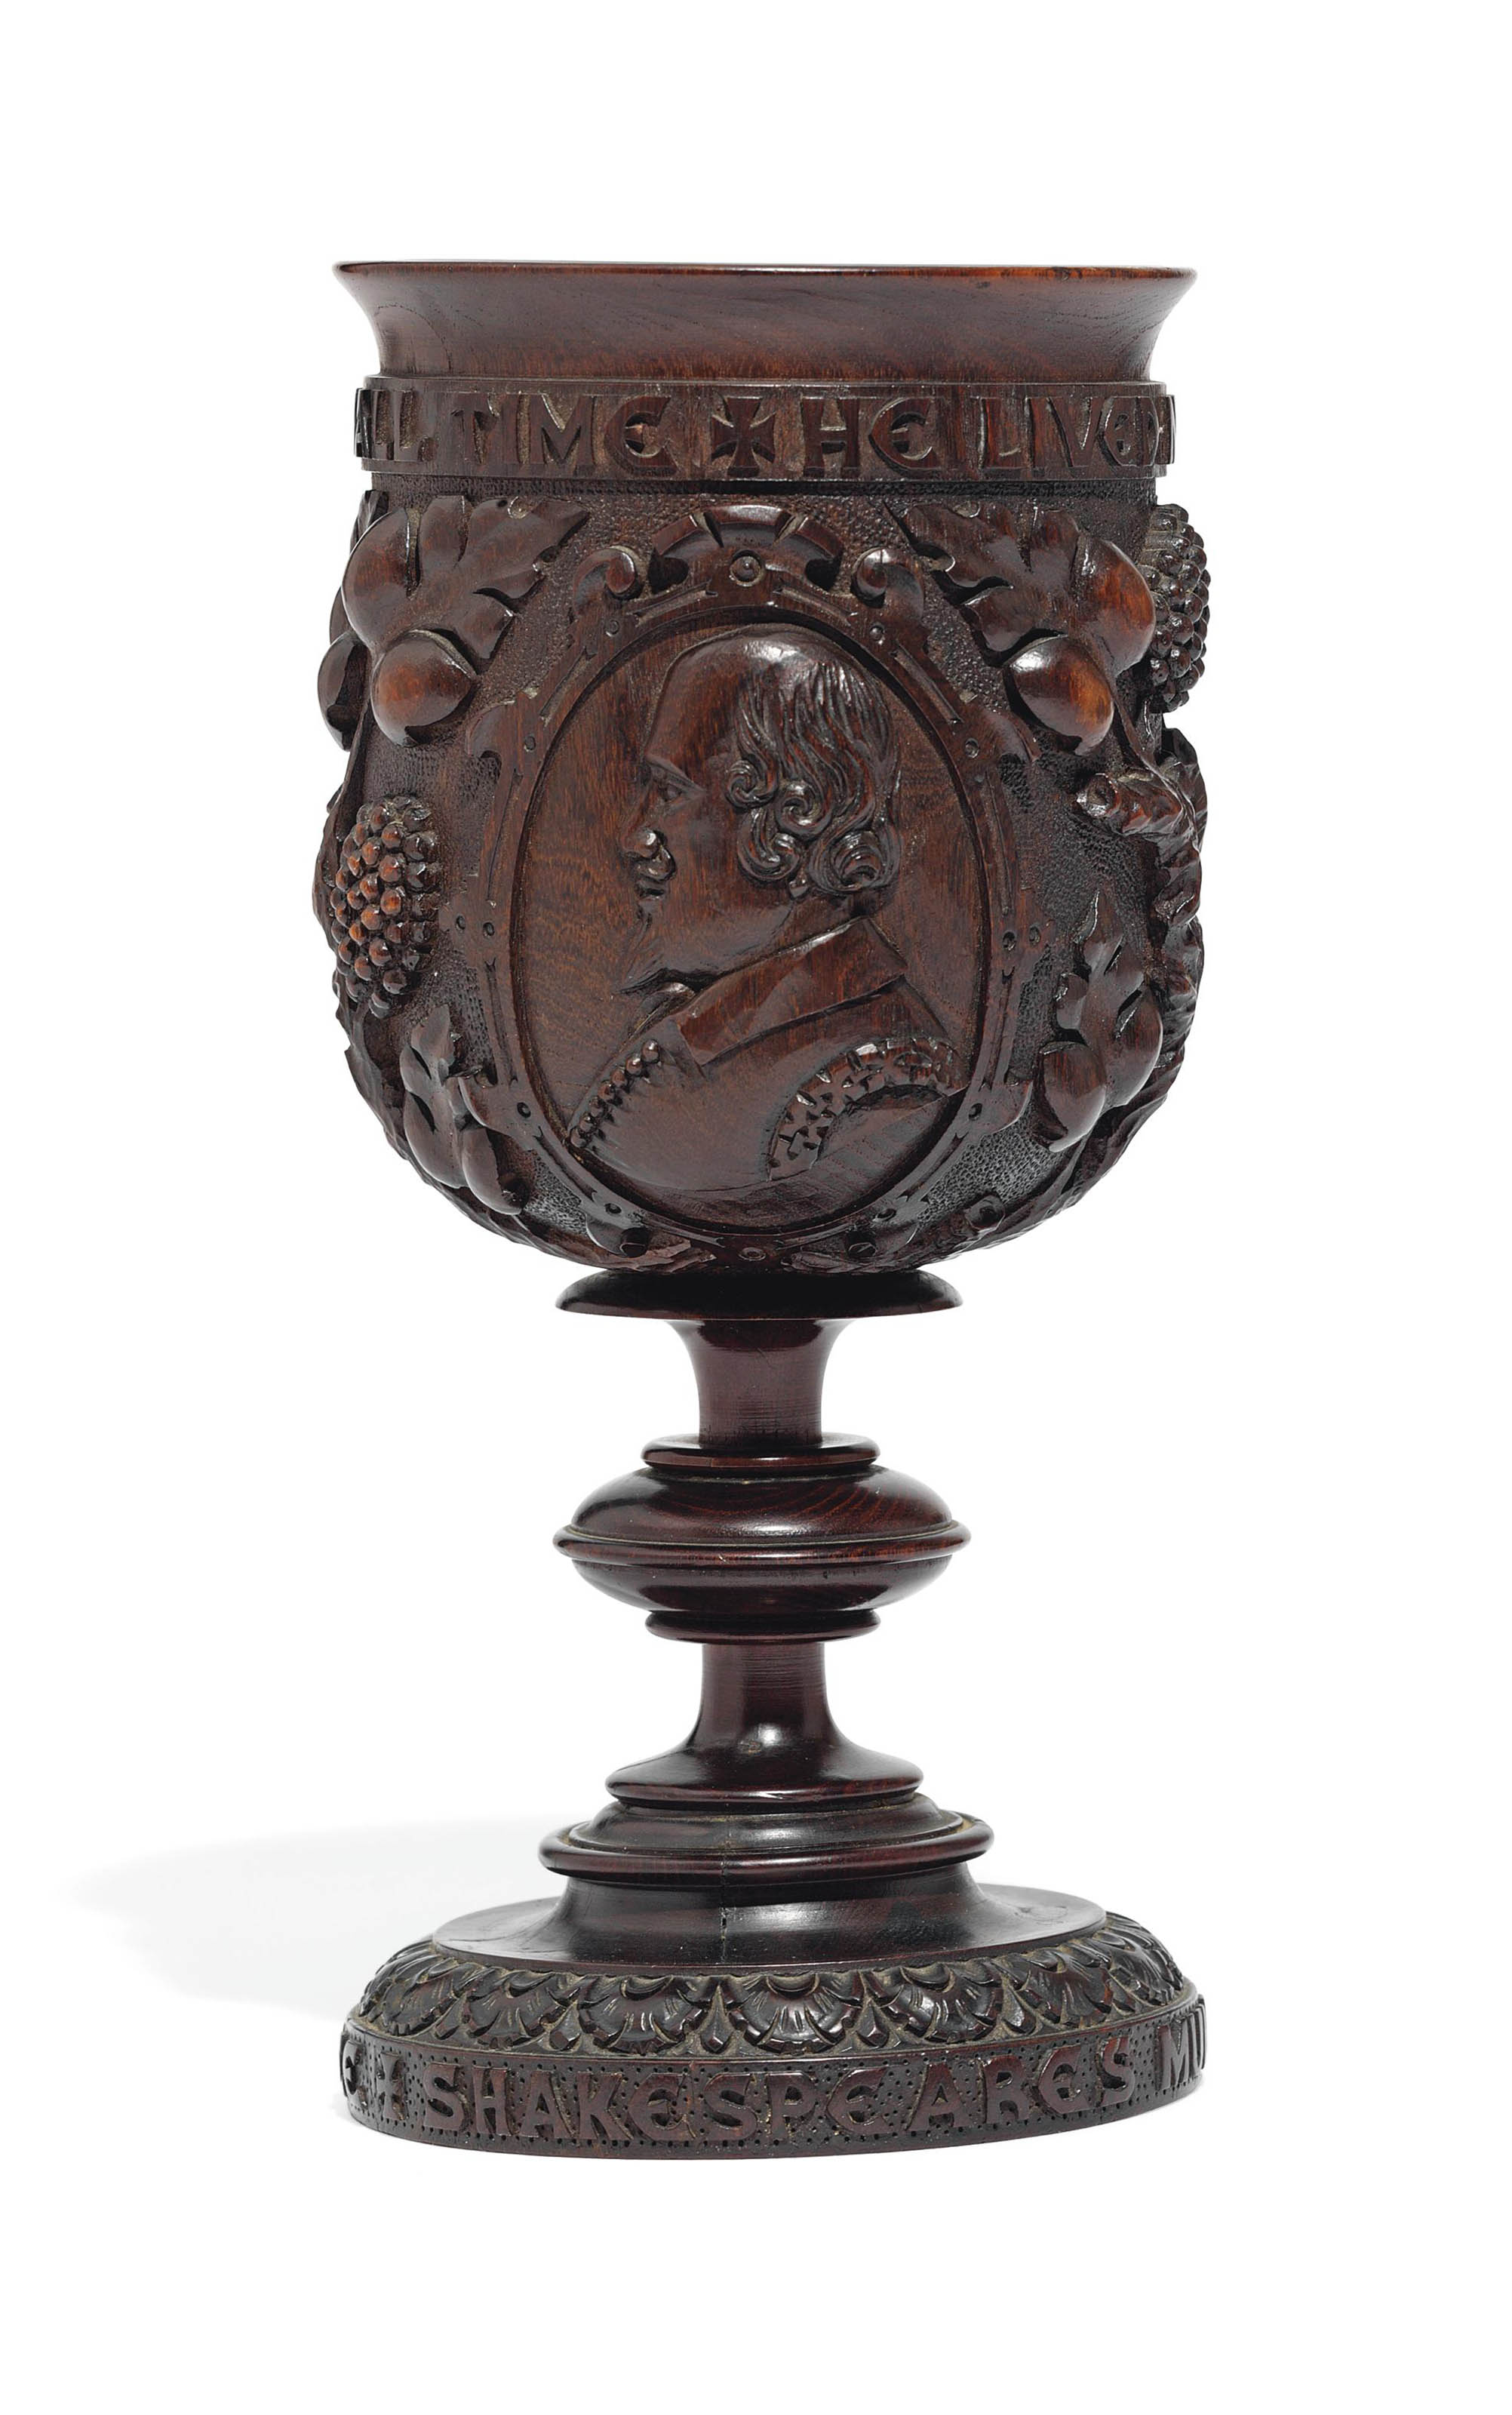 SHAKESPEARIANA -- An English mulberry goblet, [ca. 1864], by J[ohn] Marshall, the bowl with carved bust of Shakespeare in high relief, acorns, vines and Shakespeare's coat-of-arms, the upper rim carved with Ben Jonson's eulogy: 'He lived not for an age but for all time', and the lower rim: 'Shakespeare's Mulberry Wood from New Place', underside incised: 'J. Marshall Carver/Stratford on Avon' (superficial cracks at base), 224mm. high, 104mm. diameter.